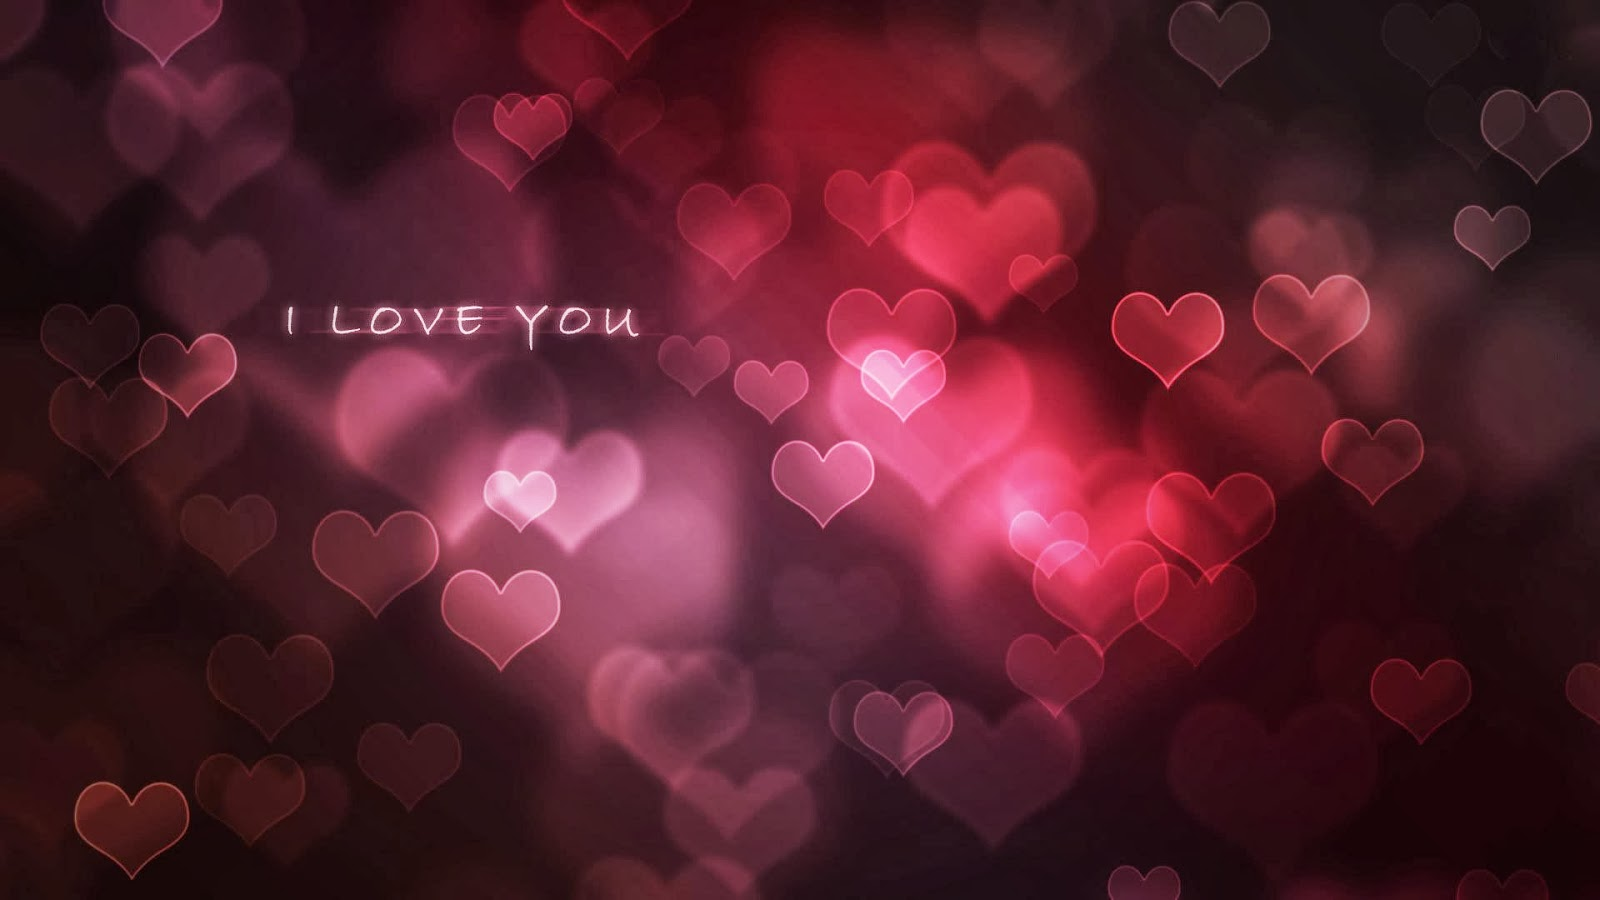 I Love You Wallpaper For Pc : I love you Text Pictures for Facebook HD Images Free ...